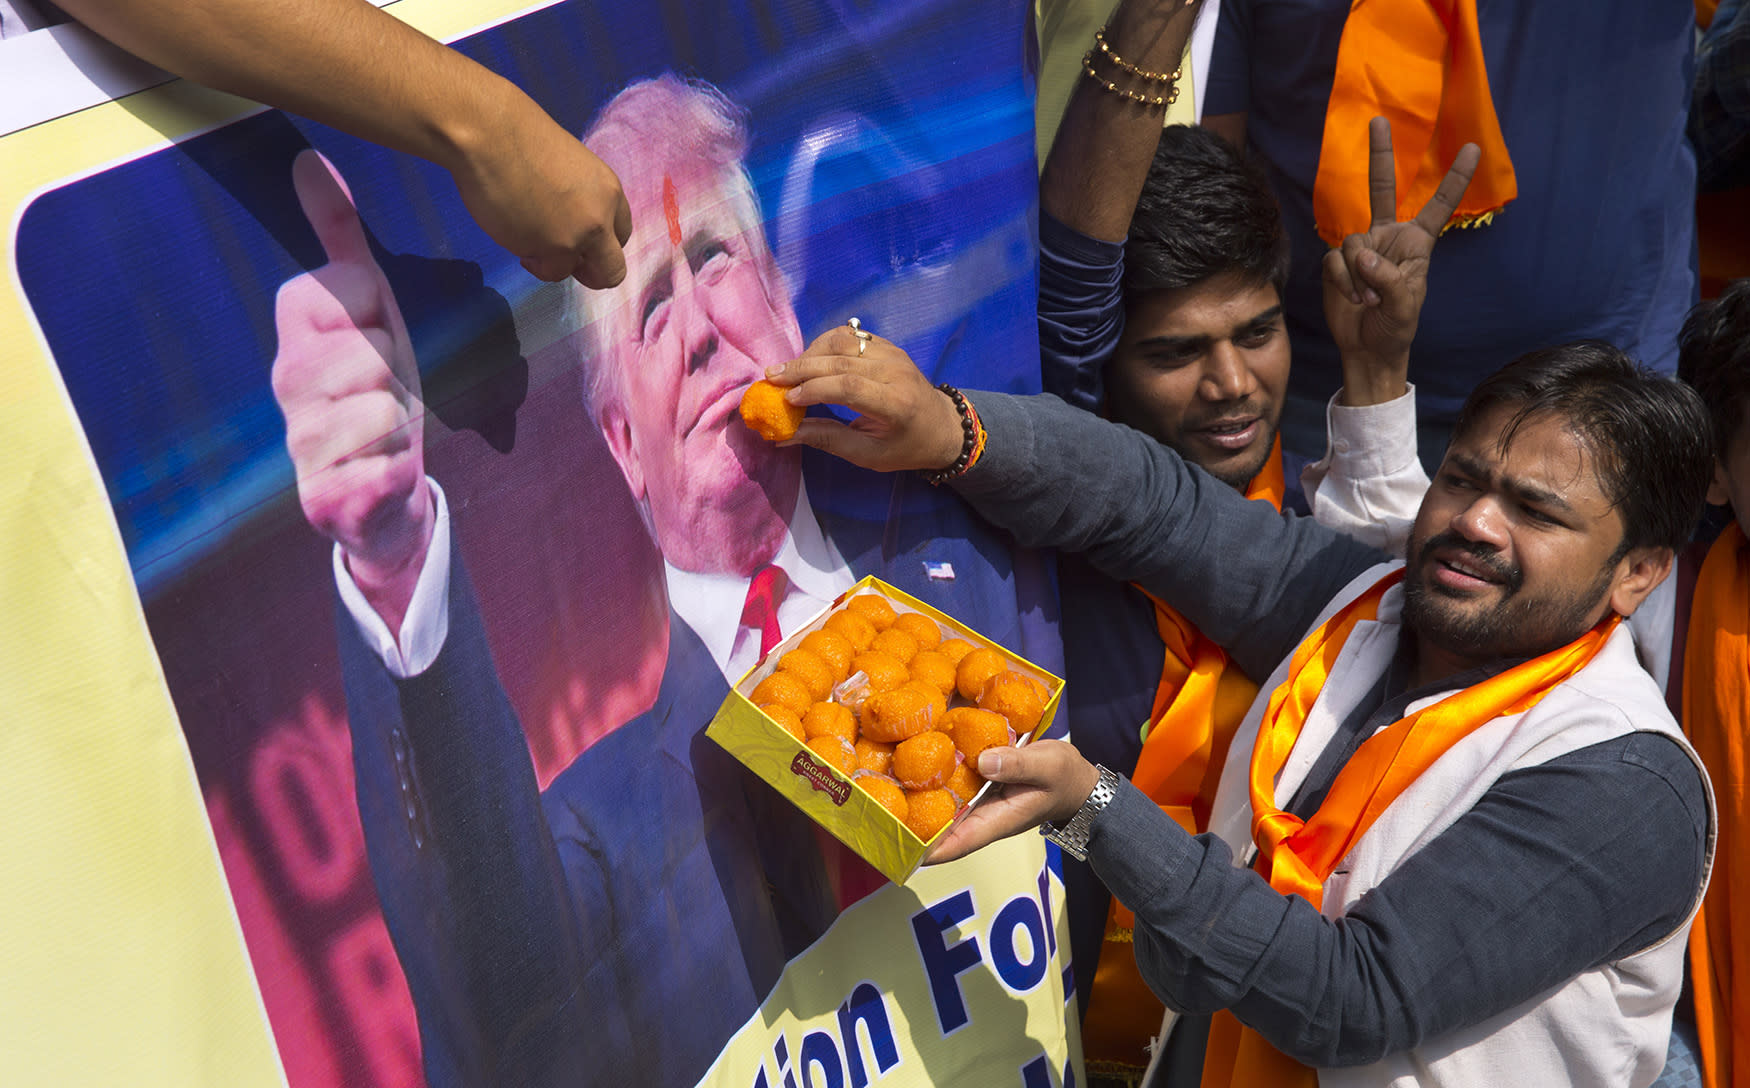 <p>Activists belonging to the Hindu Sena, or Hindu Army, a local organization, offer sweets symbolically to U.S. presidential candidate Donald Trump's poster in anticipation of his victory in New Delhi, India, Wednesday, Nov. 9, 2016. (AP Photo/Manish Swarup) </p>